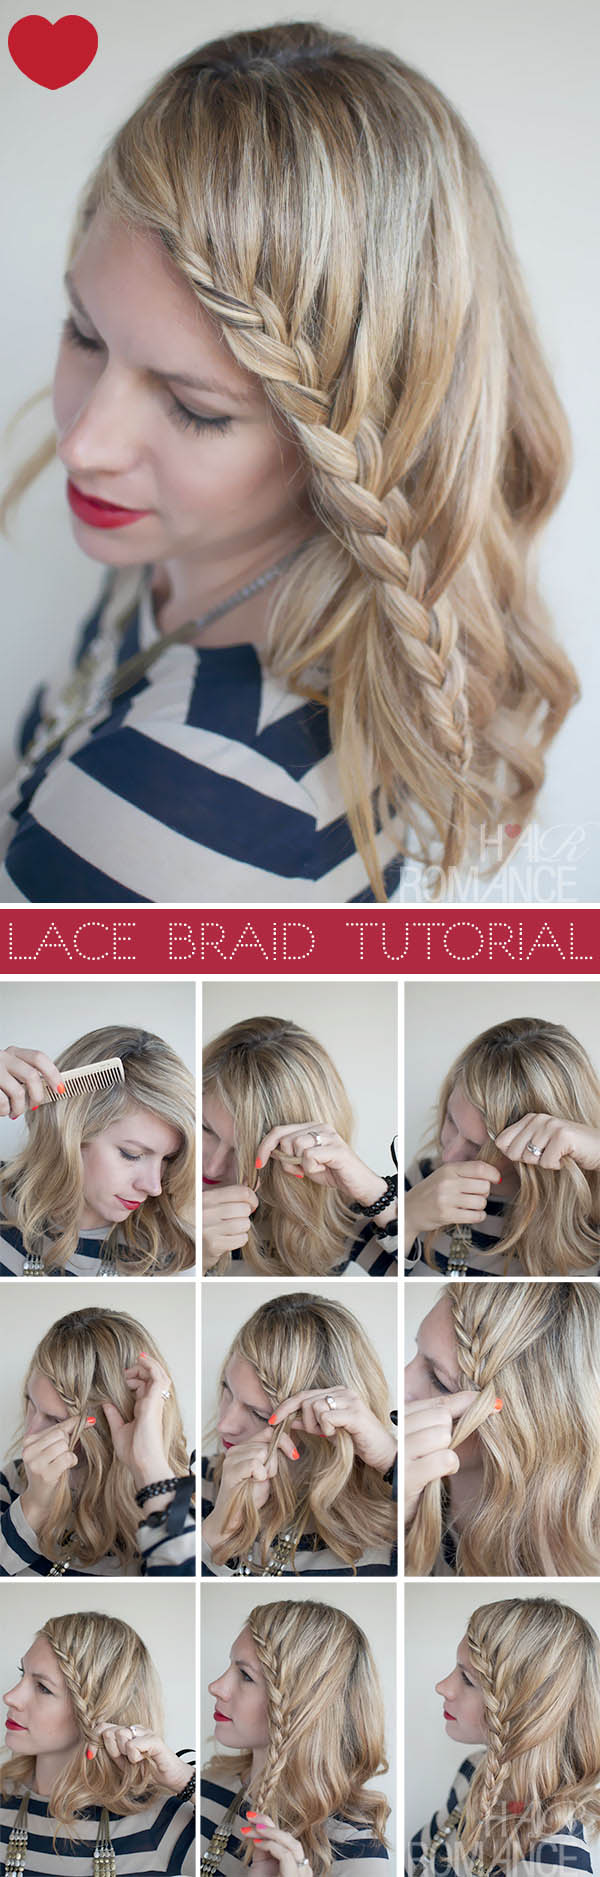 Awesome 20 Most Beautiful Braided Hairstyle Tutorials For 2014 Pretty Short Hairstyles Gunalazisus